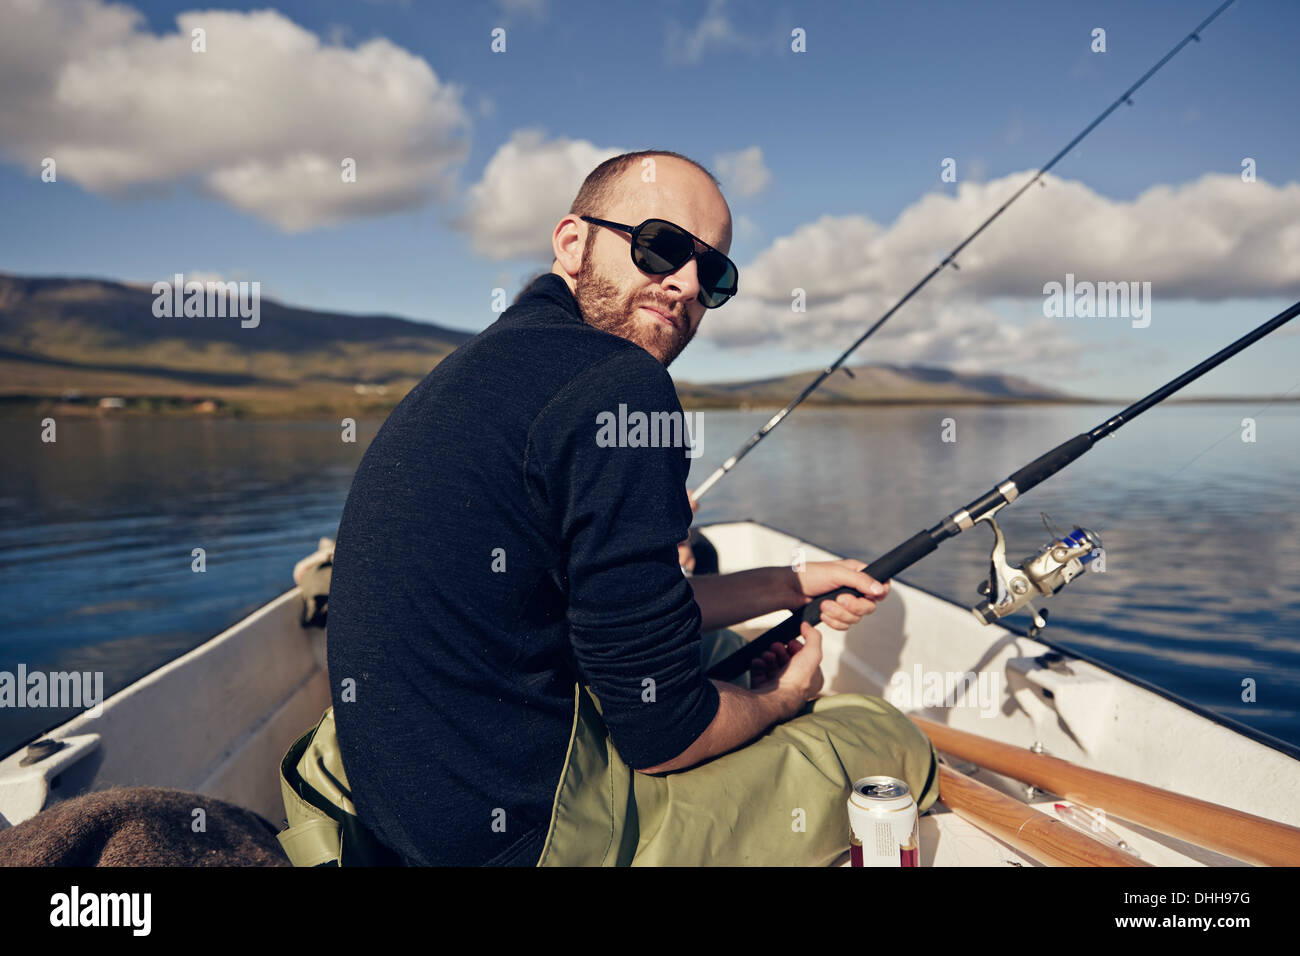 Man on fishing trip - Stock Image